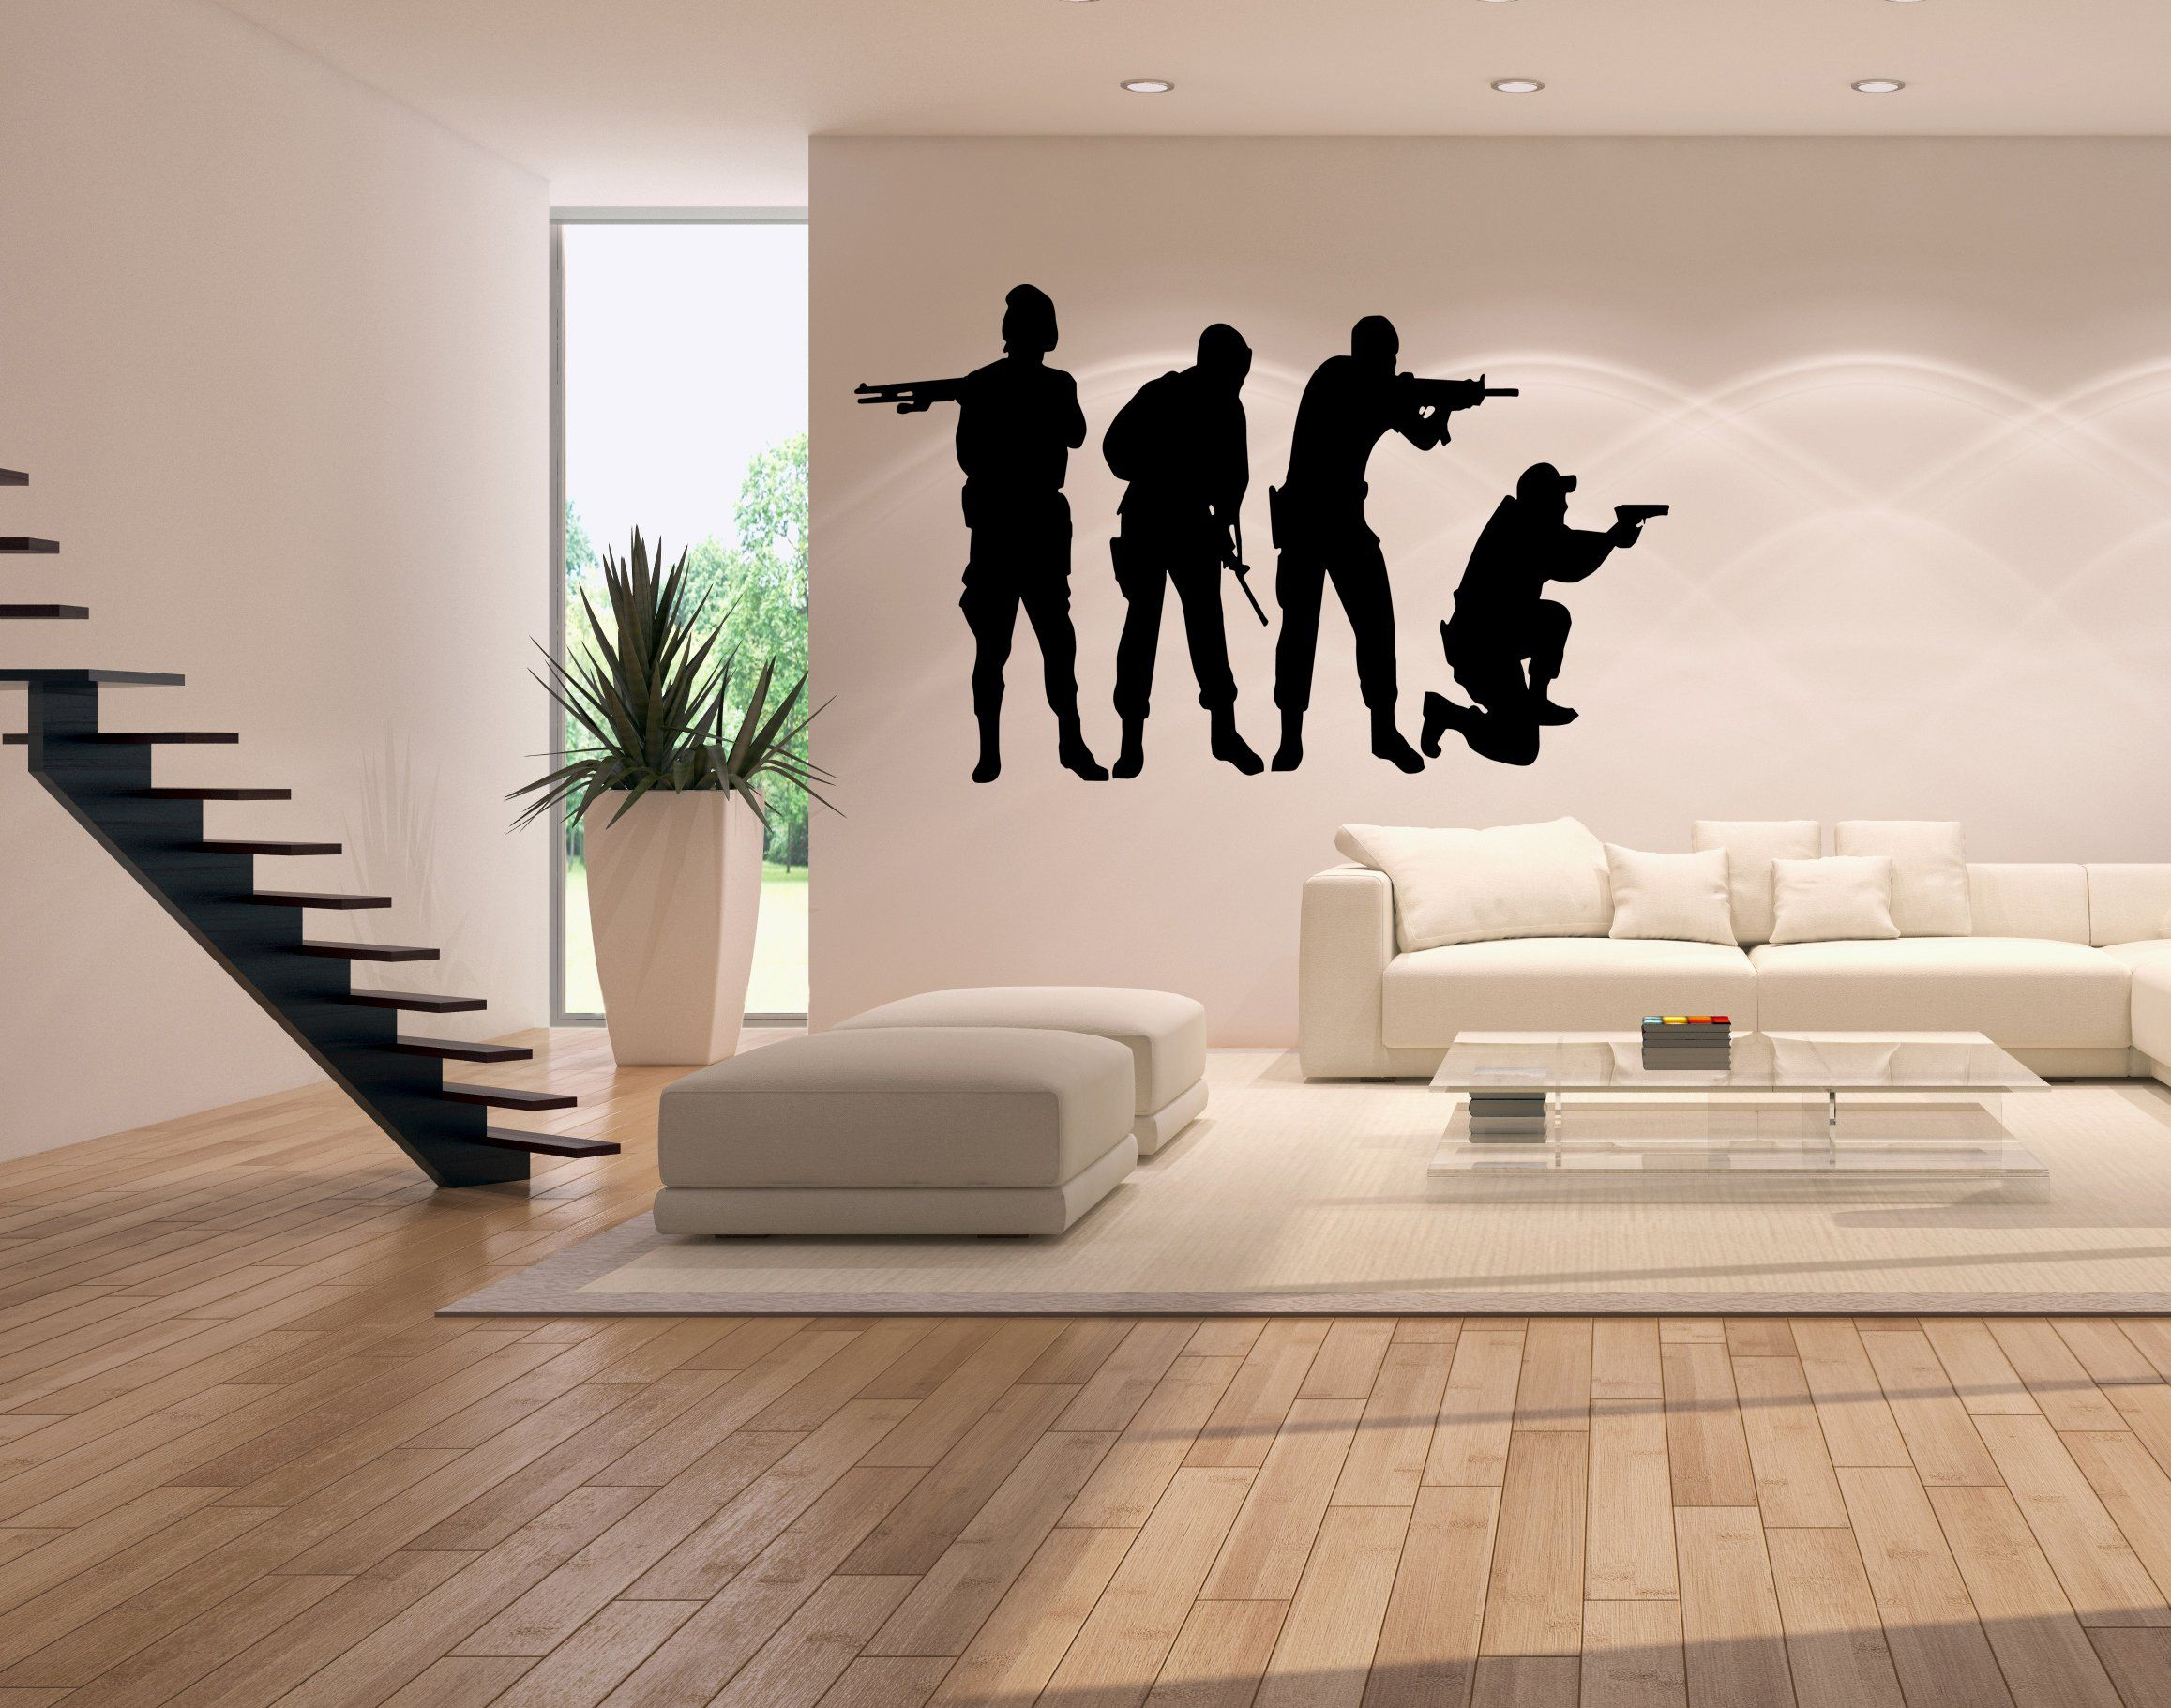 Military Bedroom Decor Military Swat Team Army Men Soldier Kid Room Decor Vinyl Wall Art